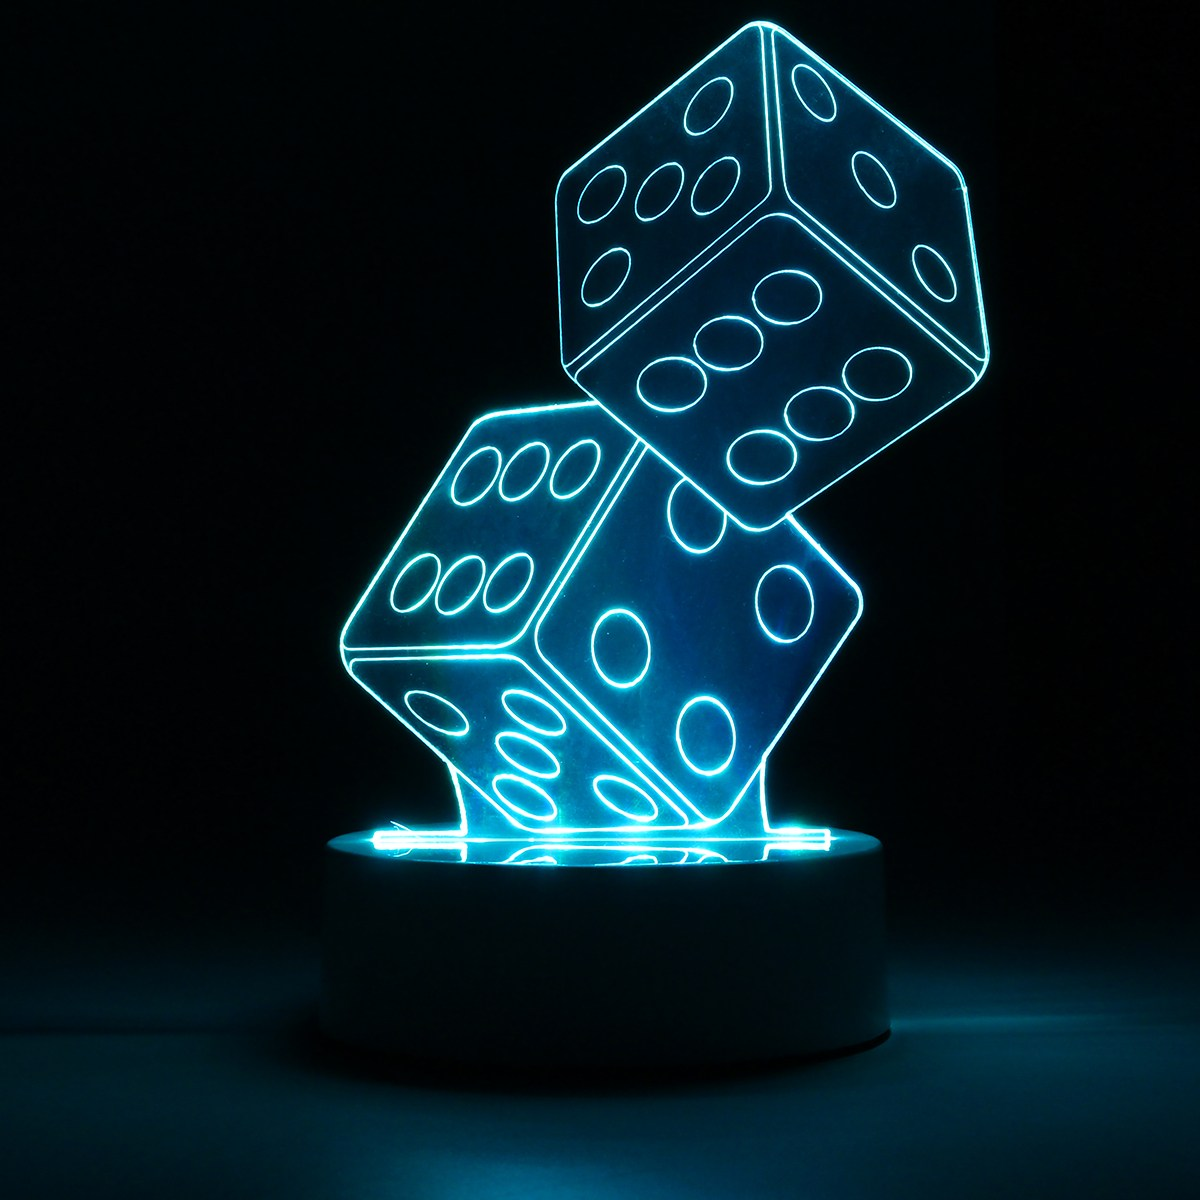 Motion Activated Led Dice Dual Shaped Controller Button Switch 3d Night Light Atmosphere Desk Table Lamp Cafe Bar Birthday Party Home Decor Gifts In Lights From